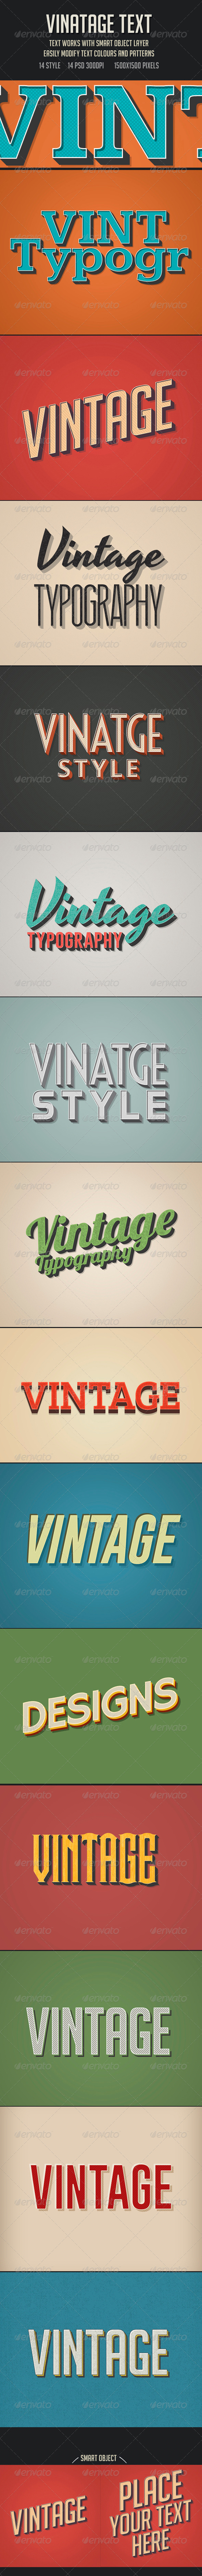 GraphicRiver Vintage Retro Text 7245276